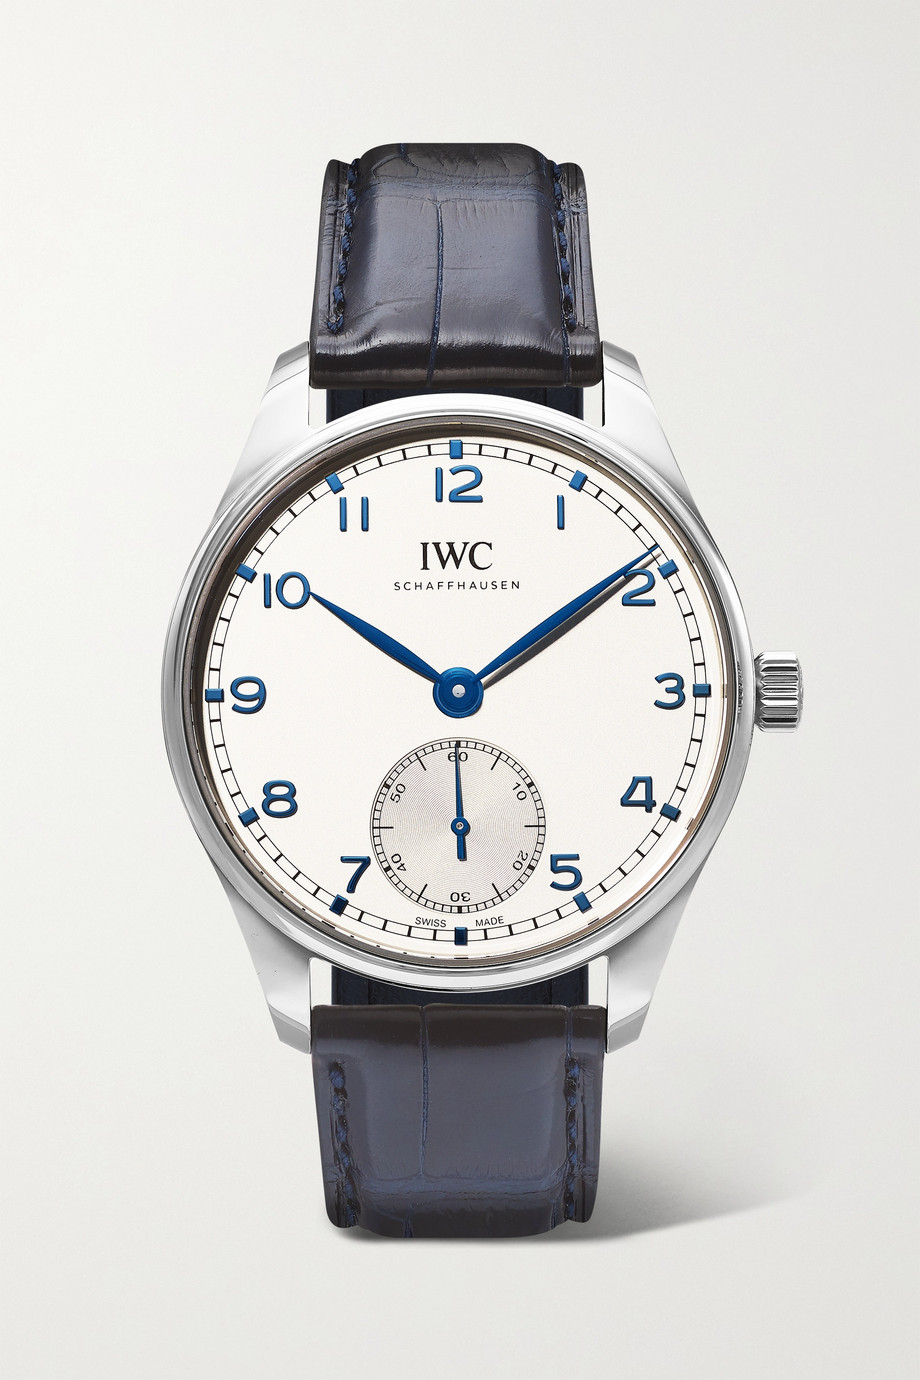 IWC SCHAFFHAUSEN Montre en acier inoxydable à bracelet en alligator Portugieser Automatic 40,4 mm